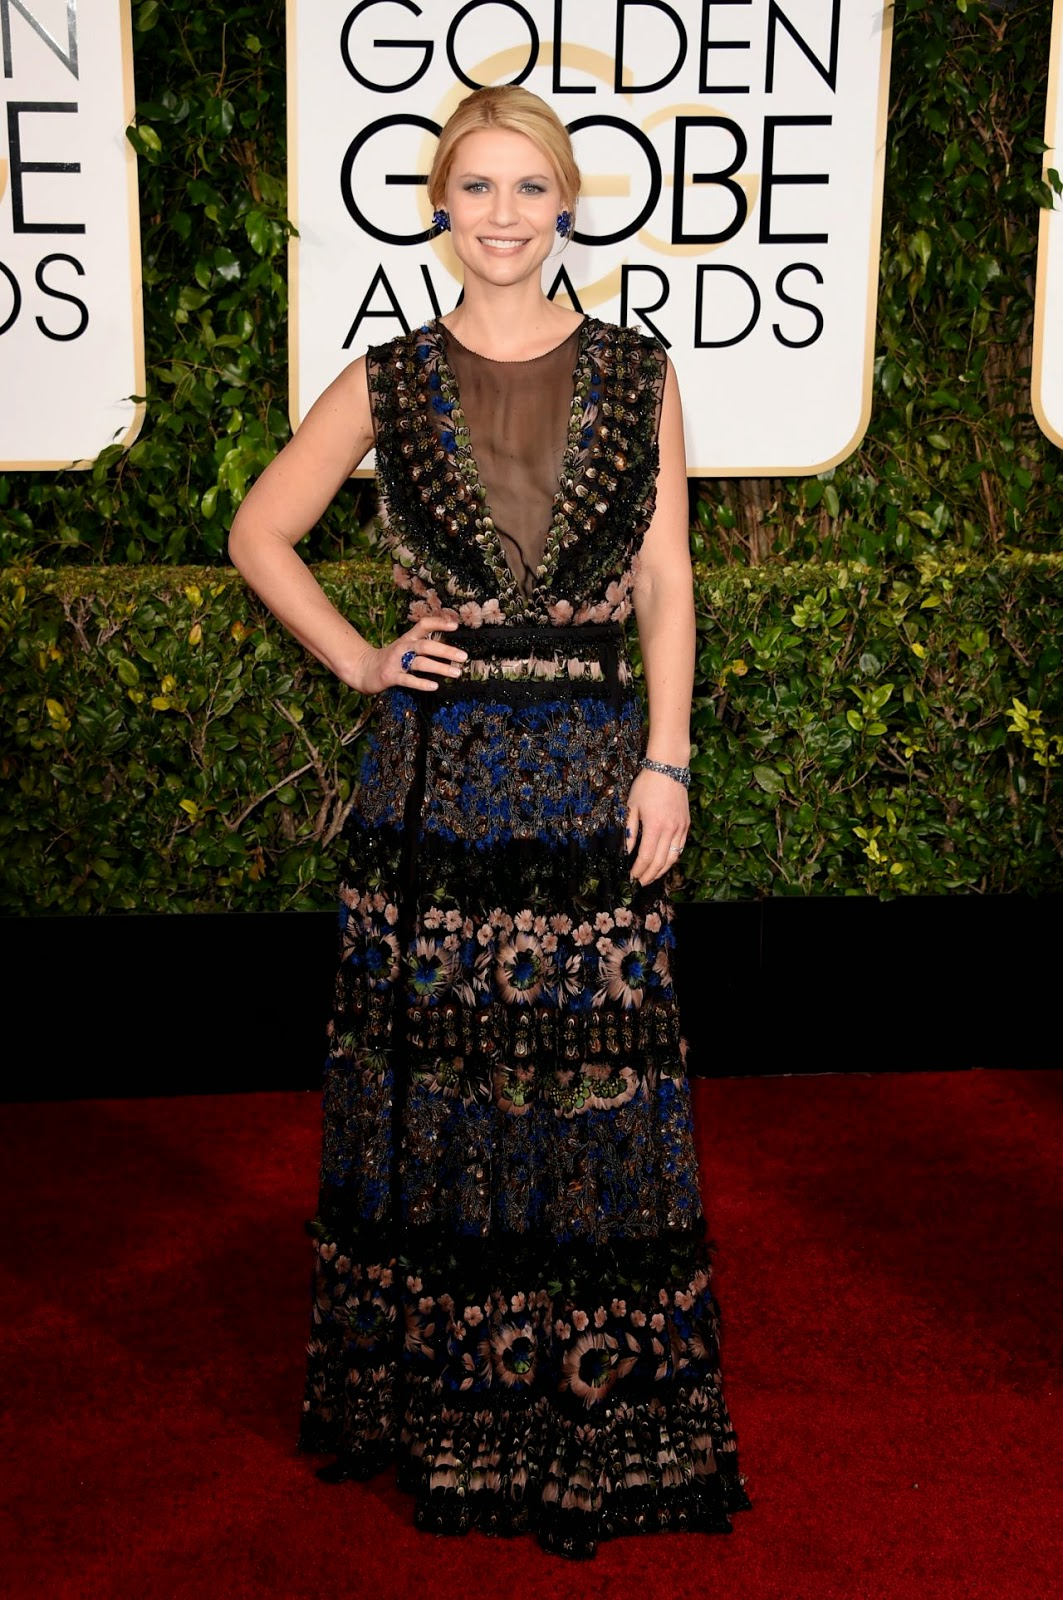 Claire Danes dazzles at the 2015 Golden Globe Awards